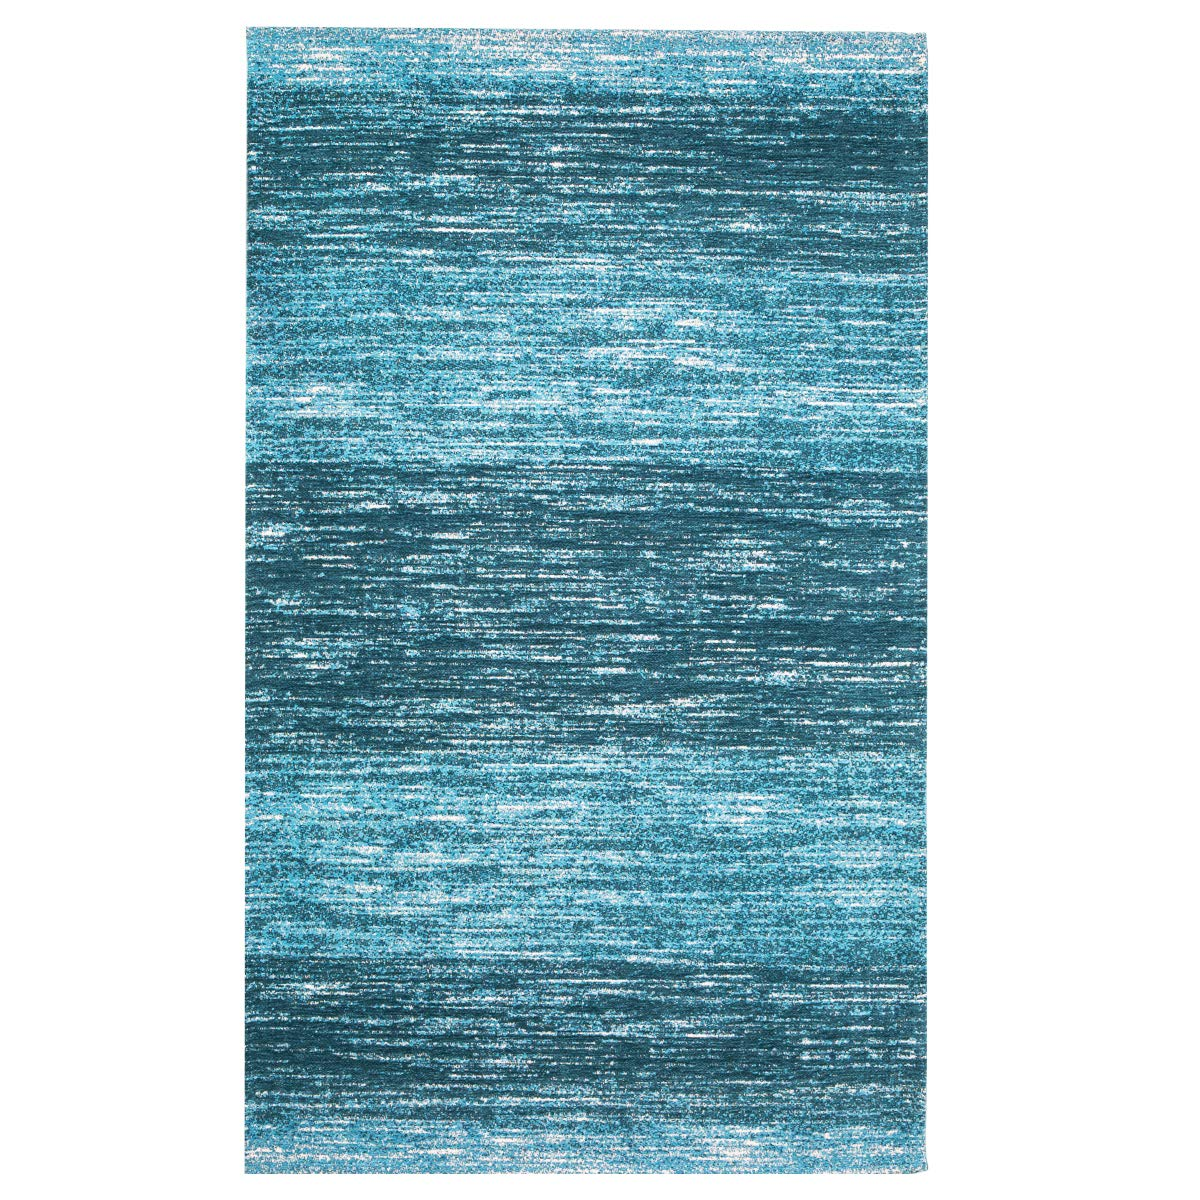 AMIDA – Blue Entryway Rug Washable Non-Slip Backing – 3 5 Contemporary Modern Abstract Stripe Door Mat Turquoise and Dark Green- Flat Weave – Easy Care,Available for Kitchen and Bedroom